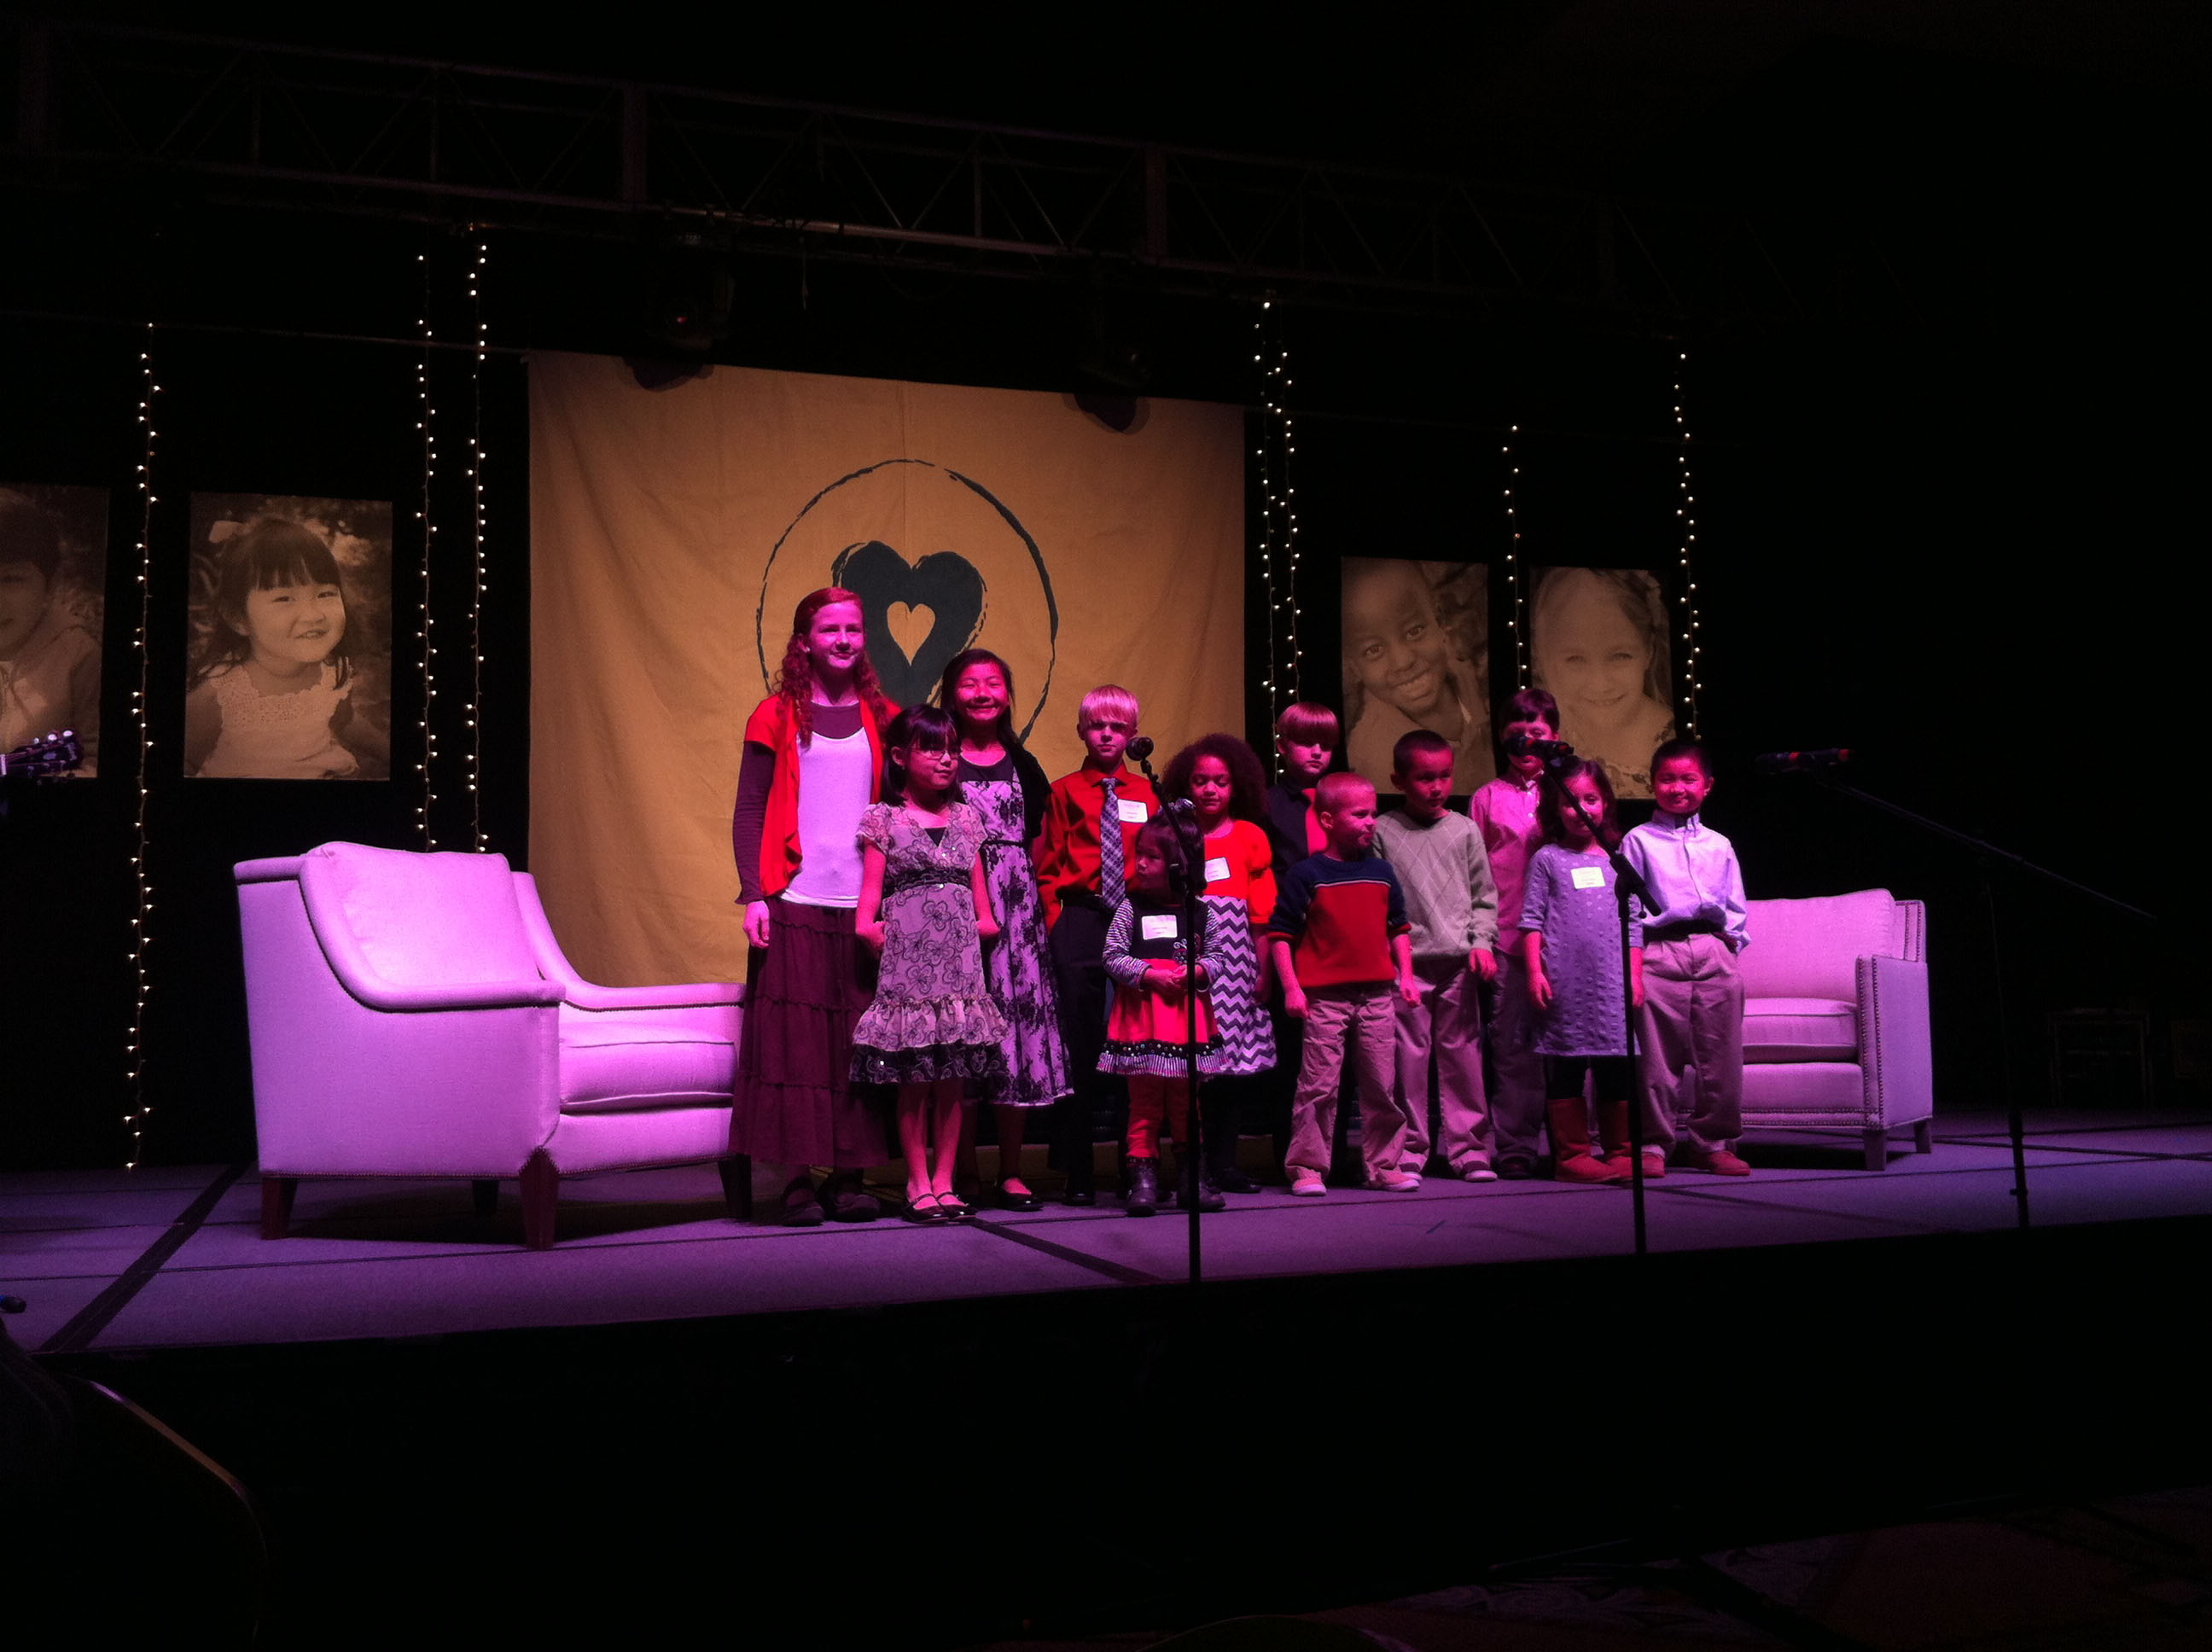 Children singing at Lifeline fundraiser sponsored by Gabby